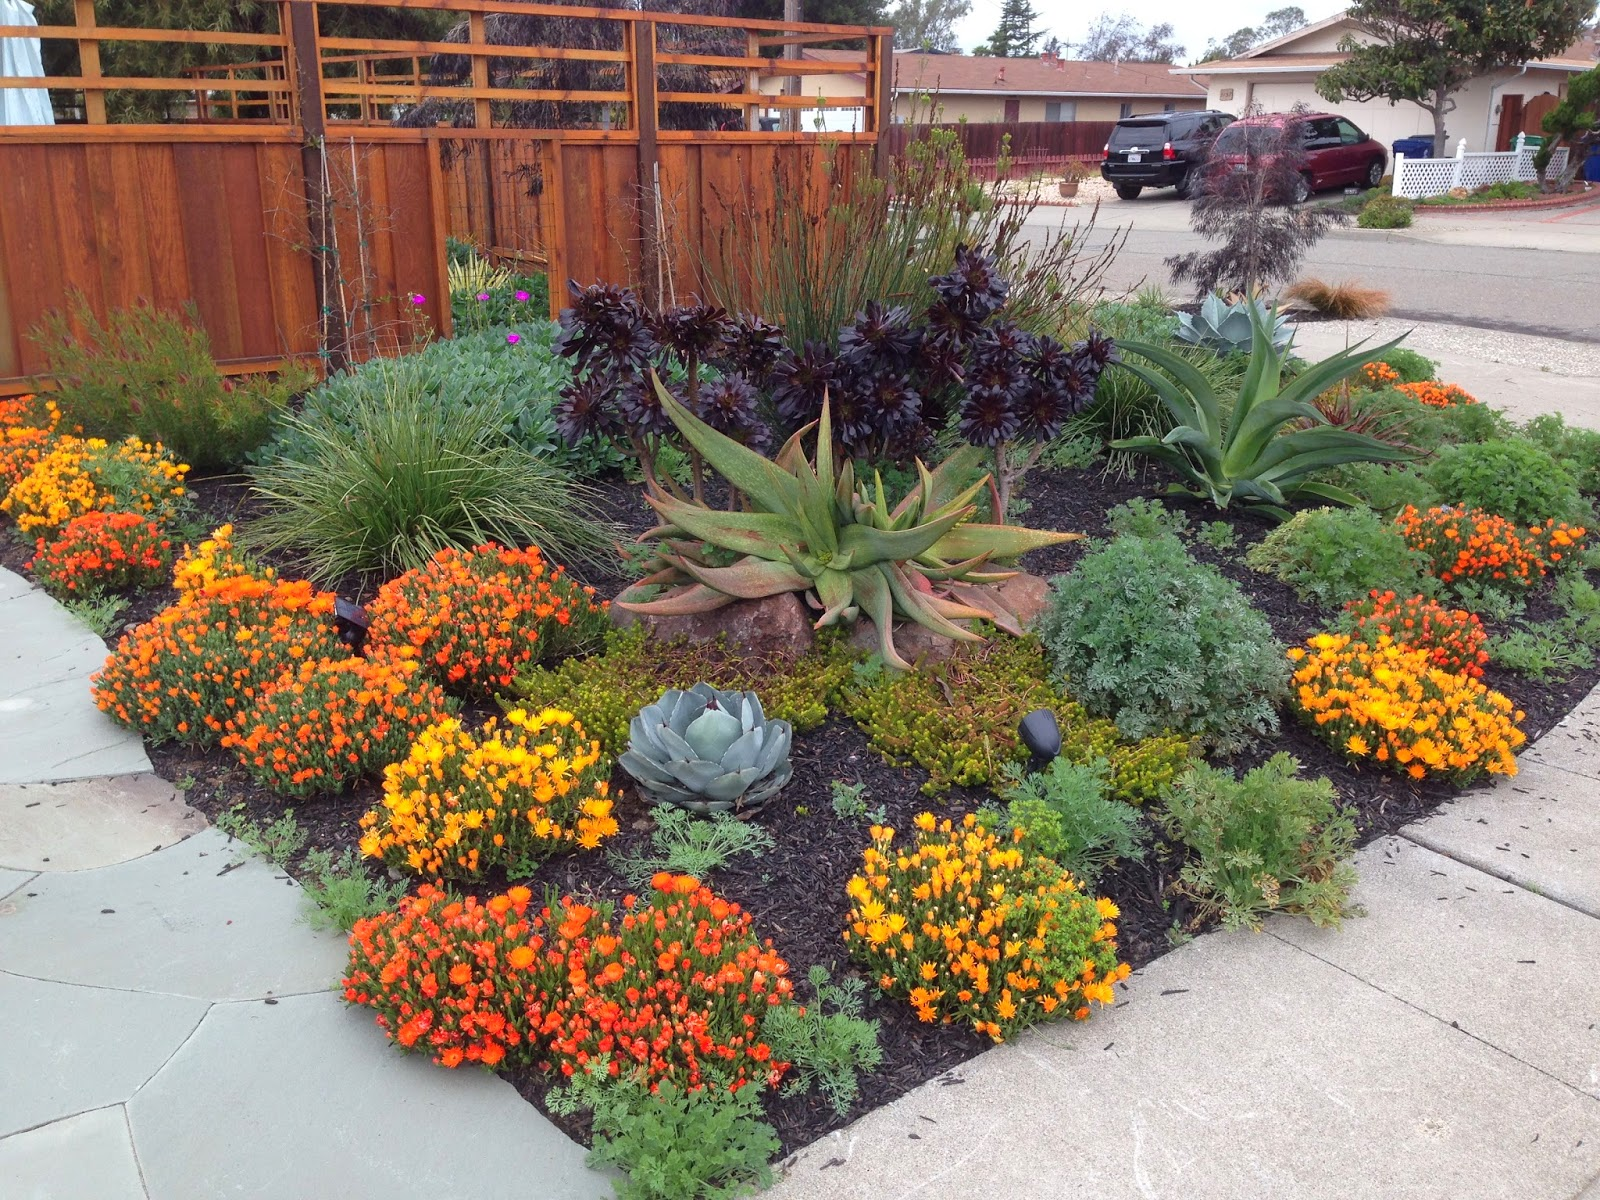 Farallon gardens alameda drought tolerant garden for Drought tolerant yard